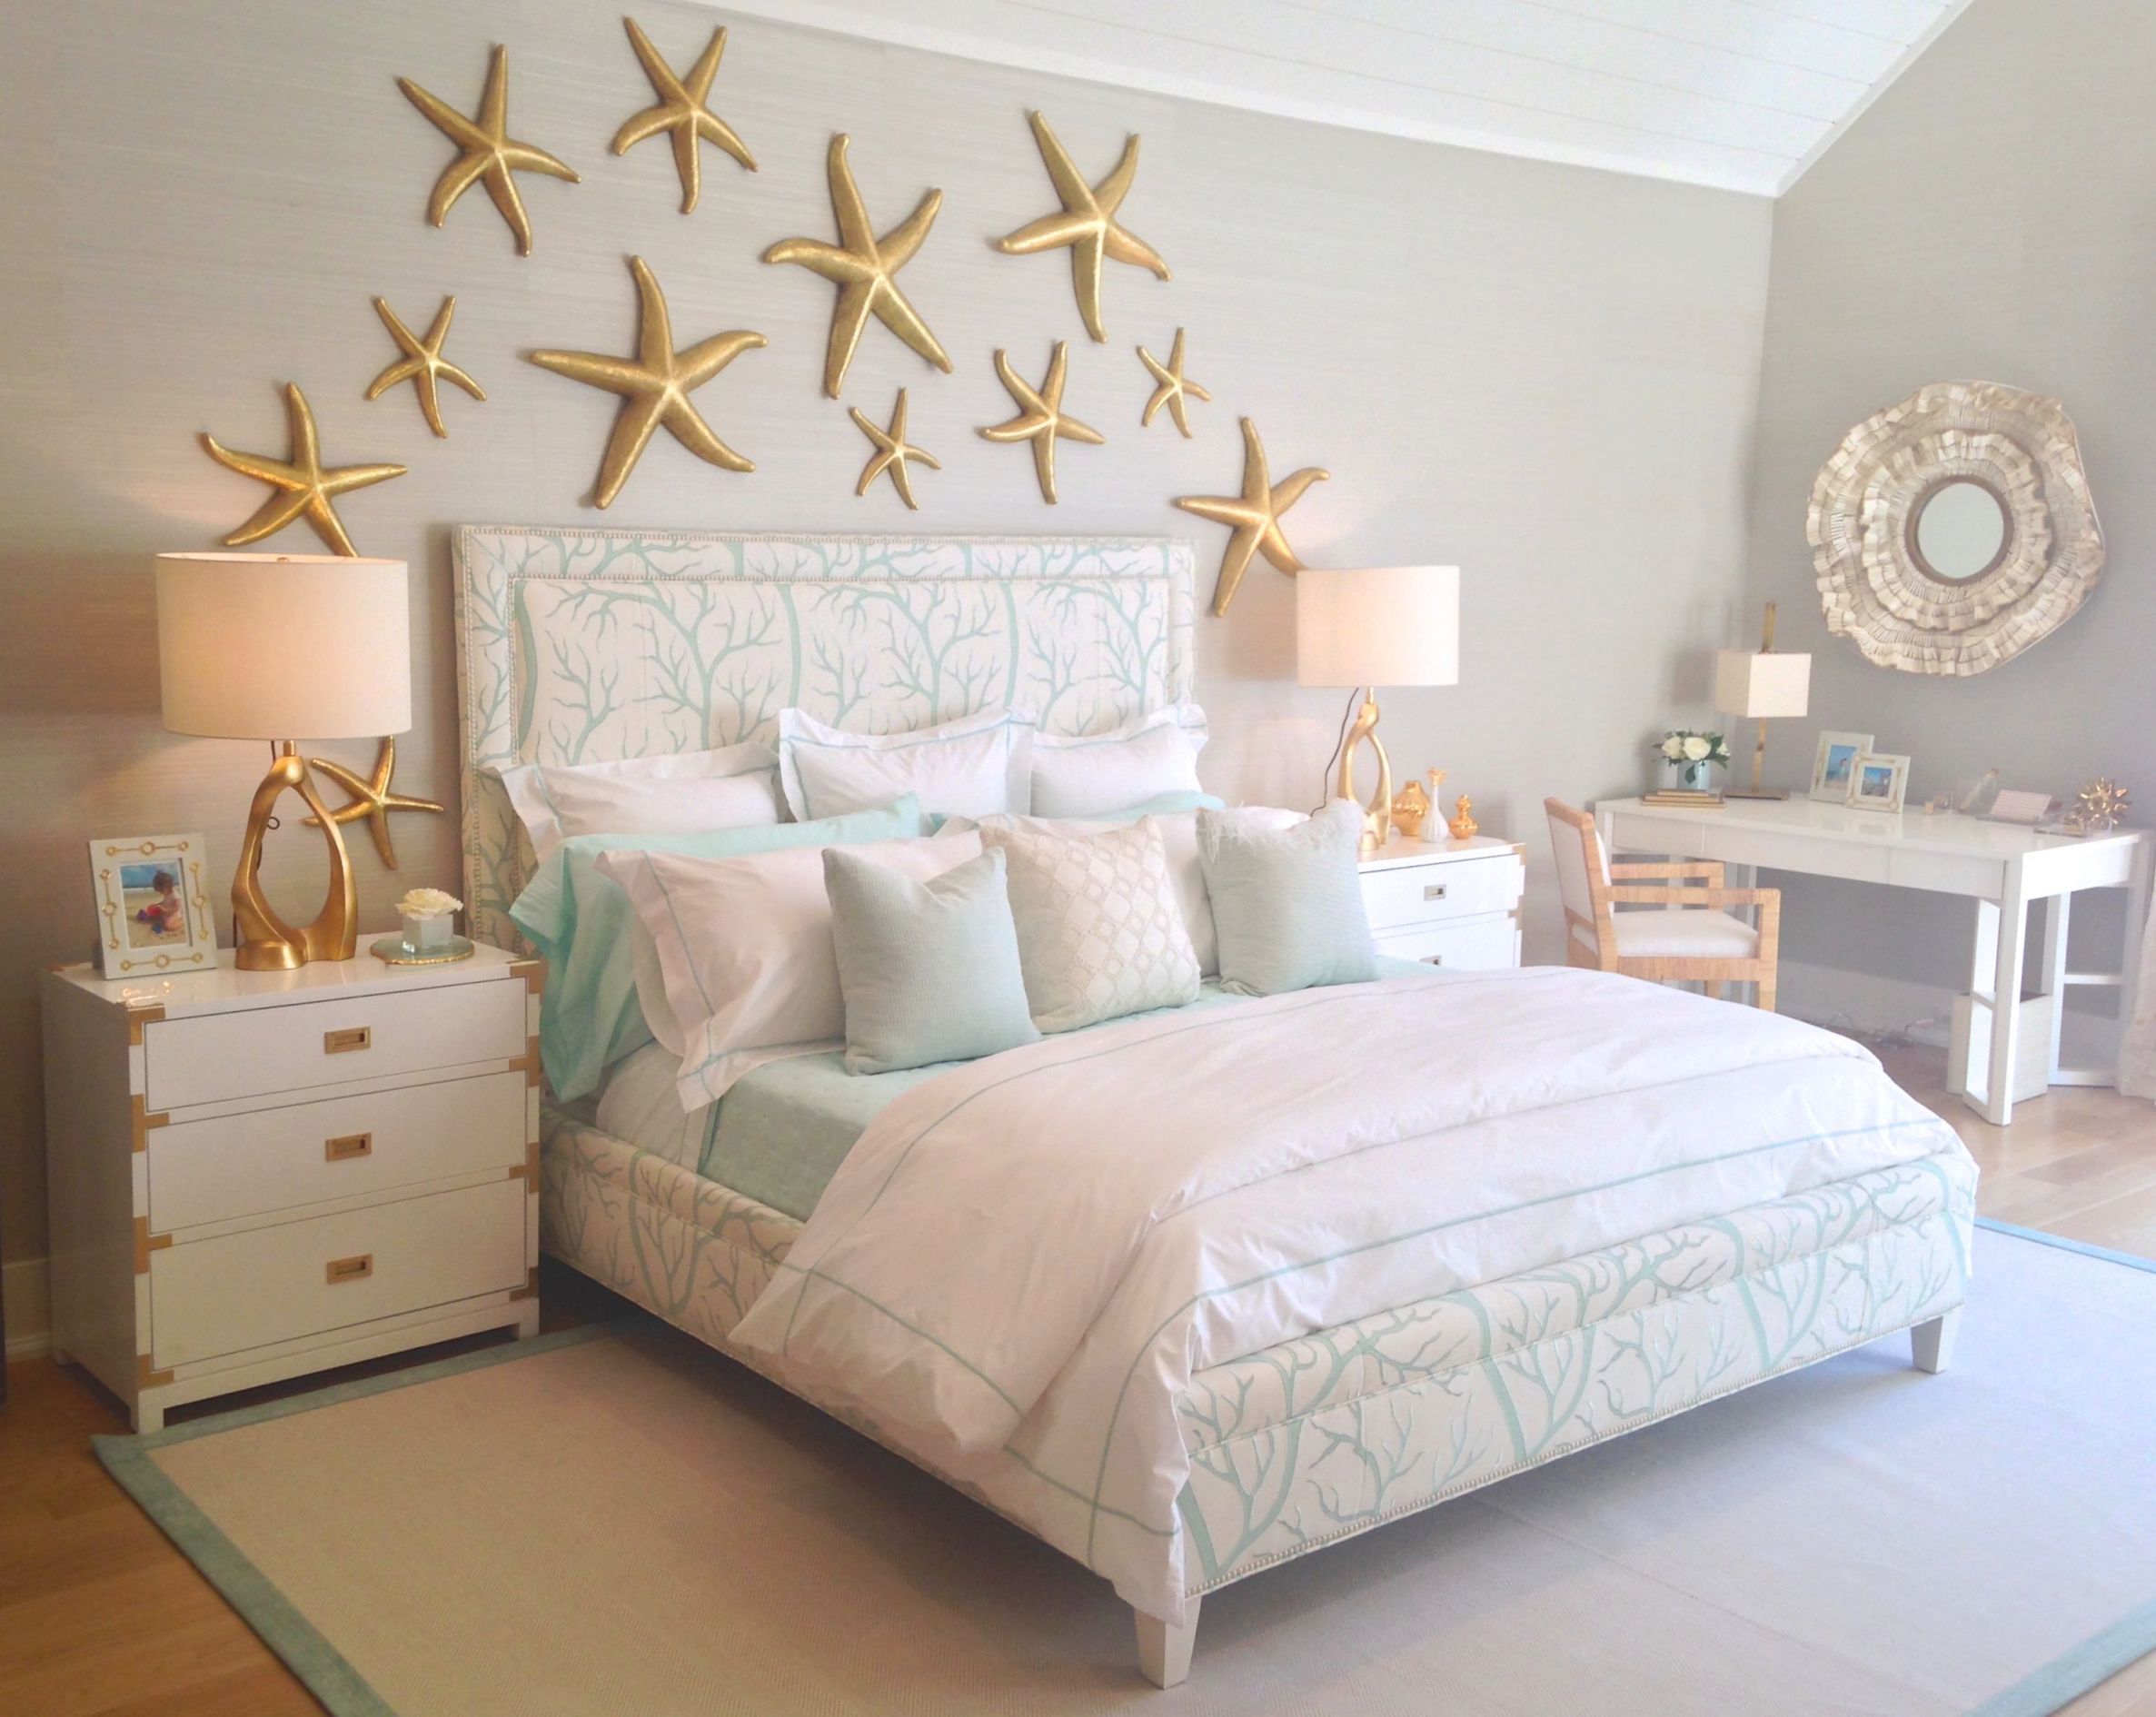 """Make Your Bedroom """"Sizzle"""" With Unique Headboard Designs intended for Beach Theme Bedroom Decorating Ideas"""